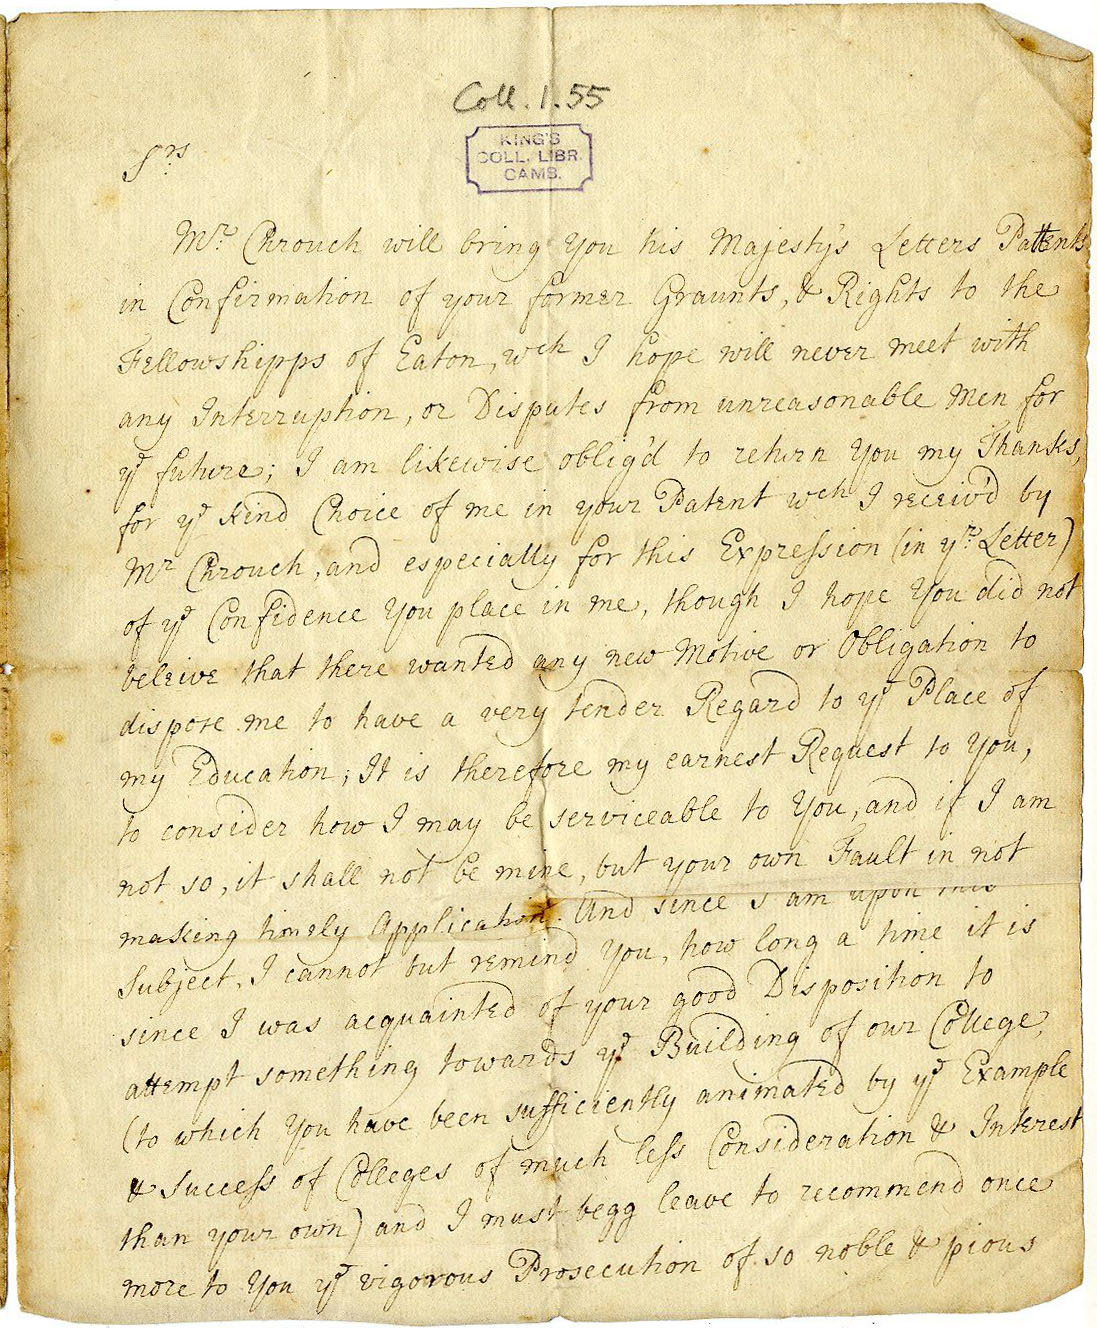 First page of a letter from George Legg, Lord Dartmouth, to the Provost and Fellows, urging them to build and promising to commend any such project to the King's Patronage, 14 March 1685-6. [GIB/1/1, former ref Coll 1/55]